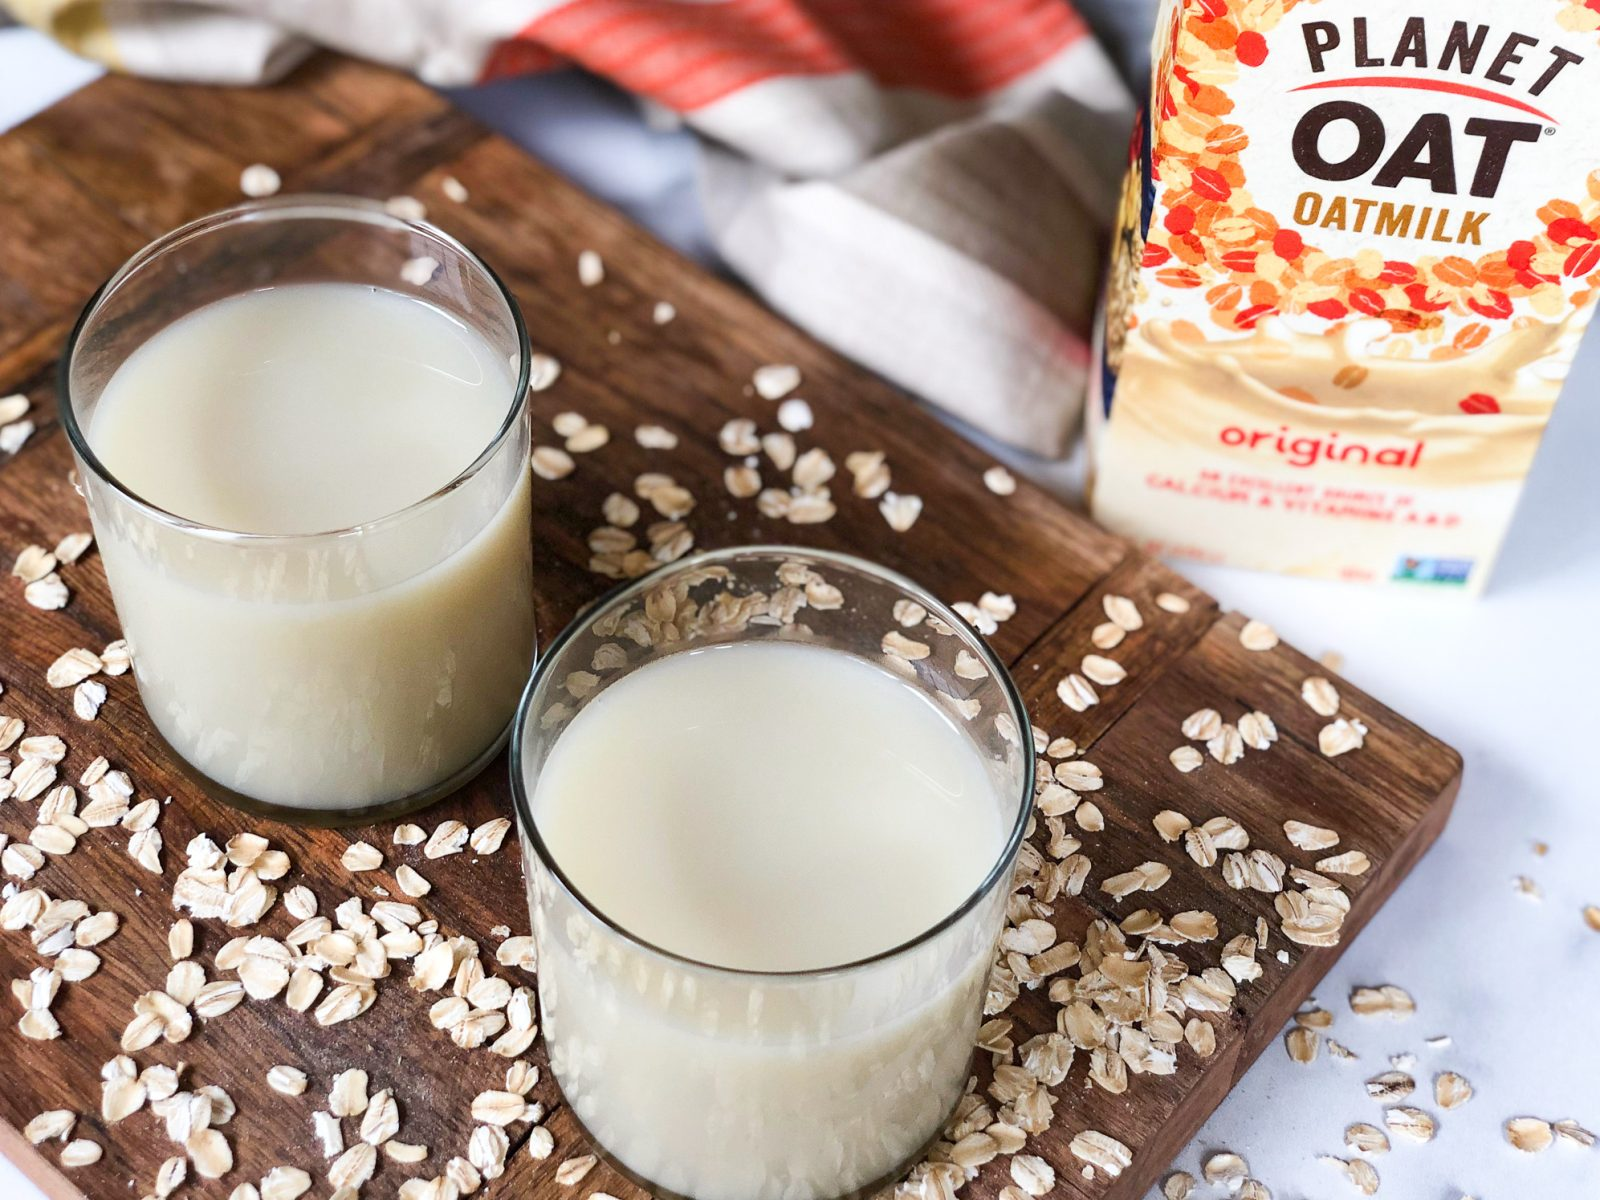 Planet Oat Oatmilk Just 50¢ At Publix - New Coupon! on I Heart Publix